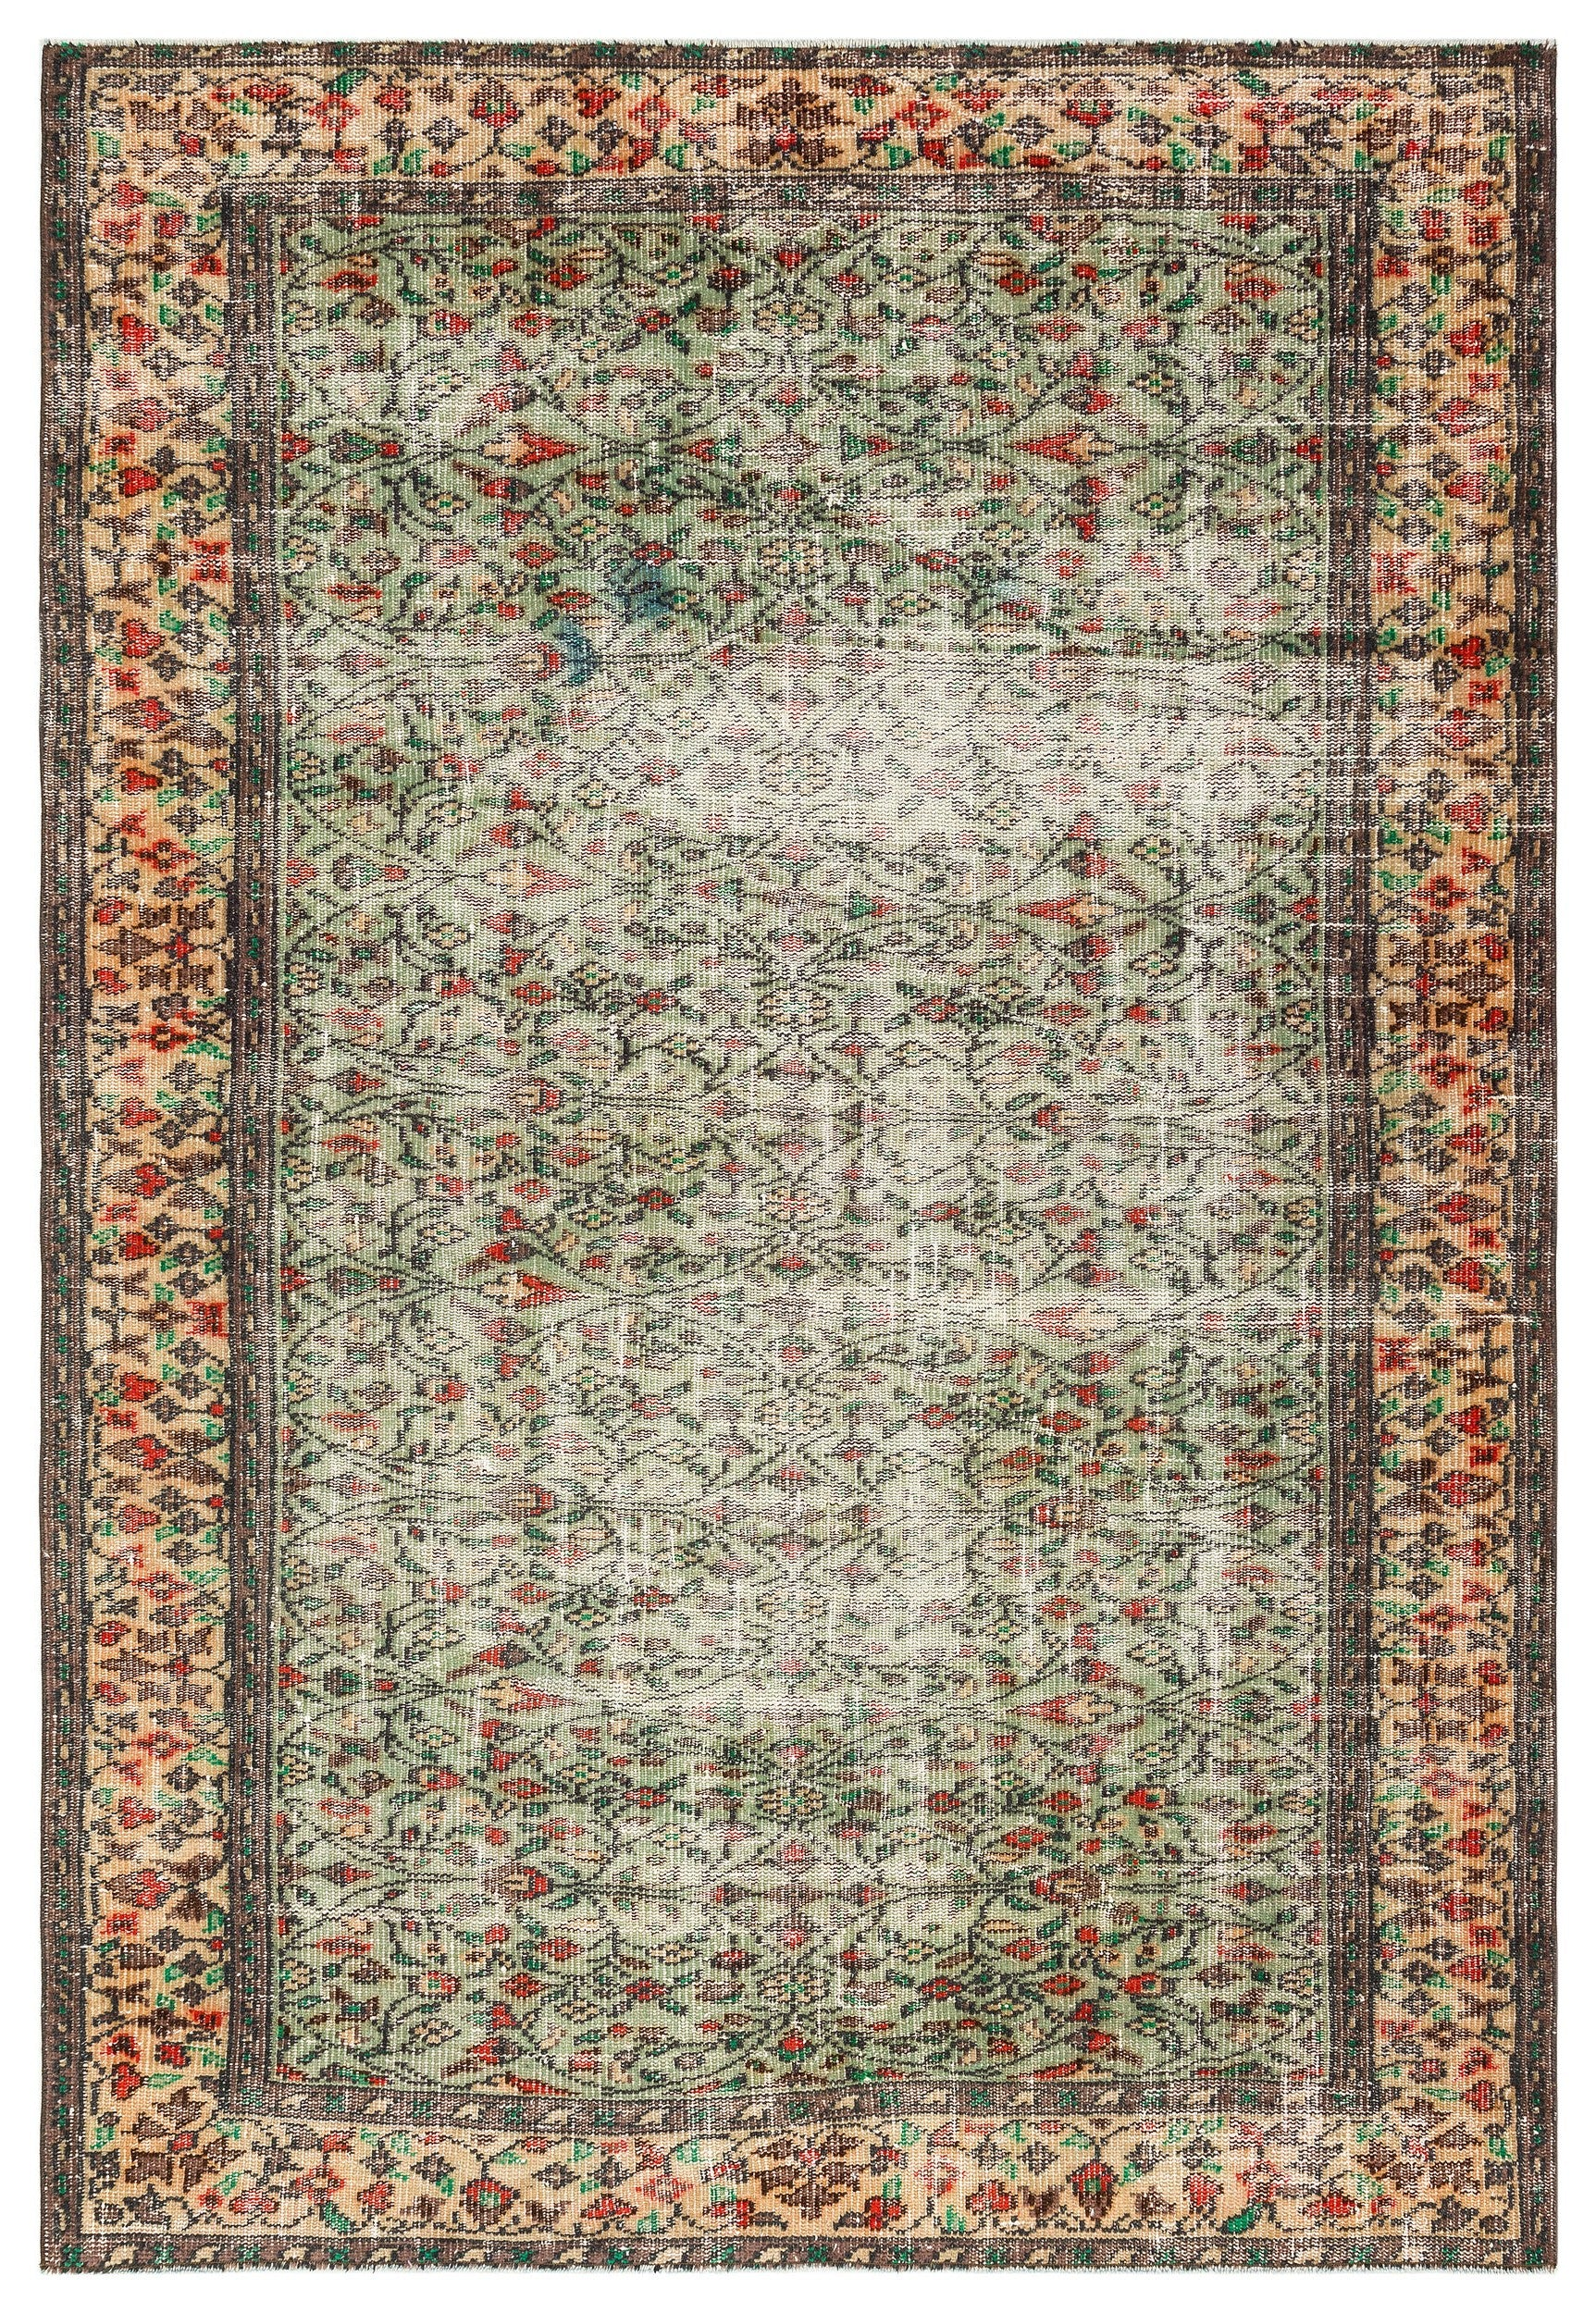 Naturel Over Dyed Vintage Rug 5'12'' x 8'8'' ft 182 x 263 cm